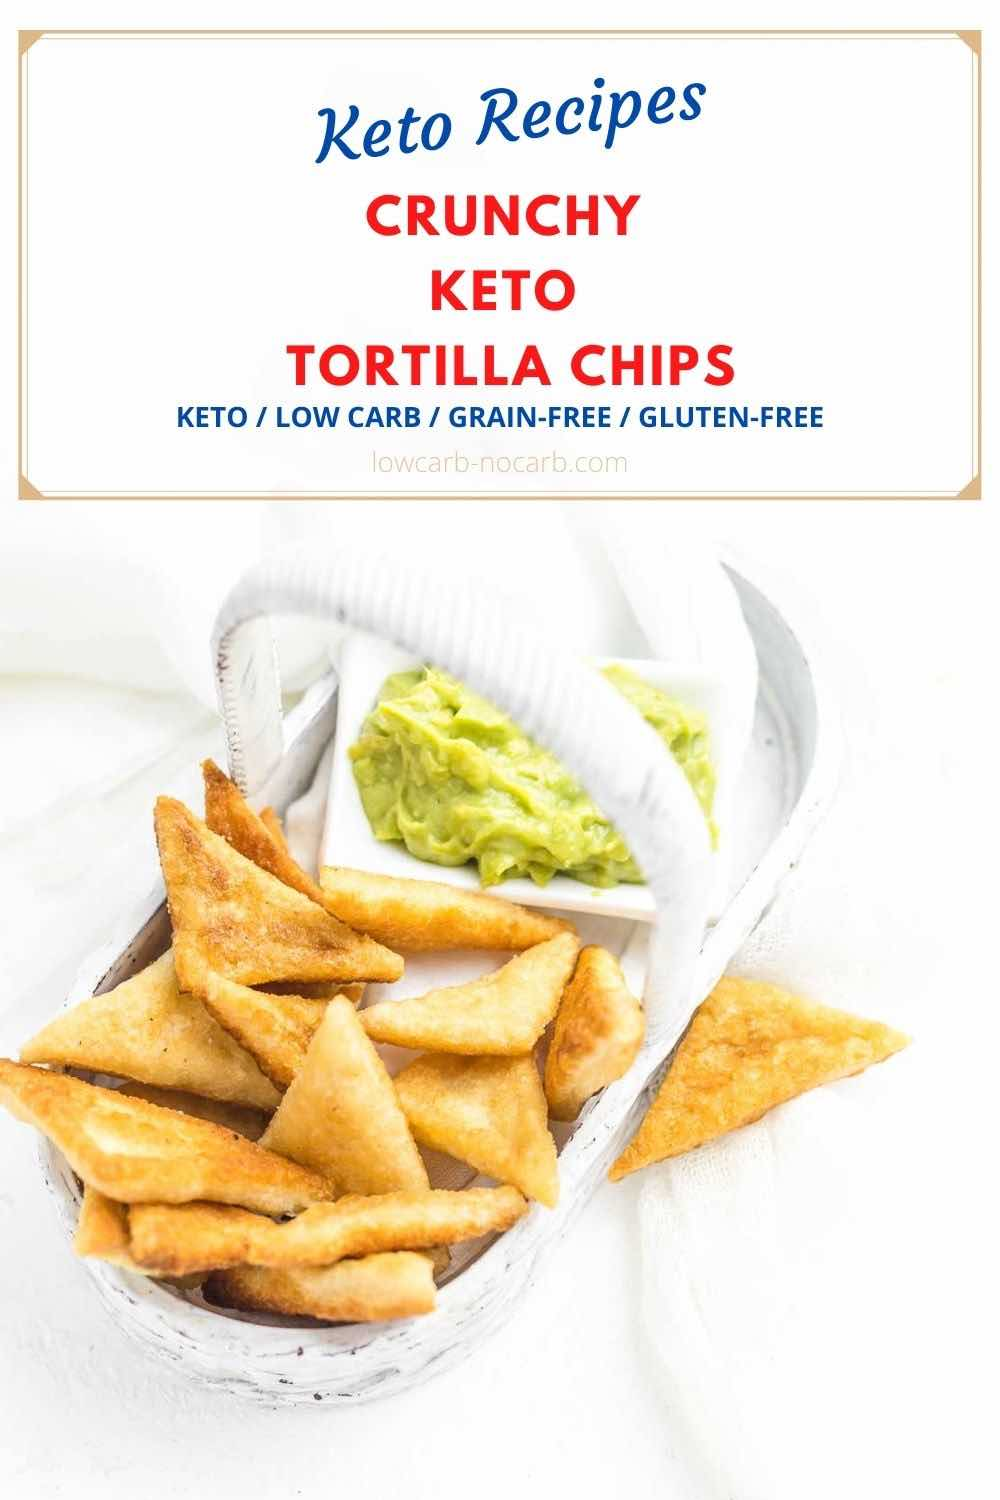 Easy Keto Tortilla Chips in a little white basket with avocado spread